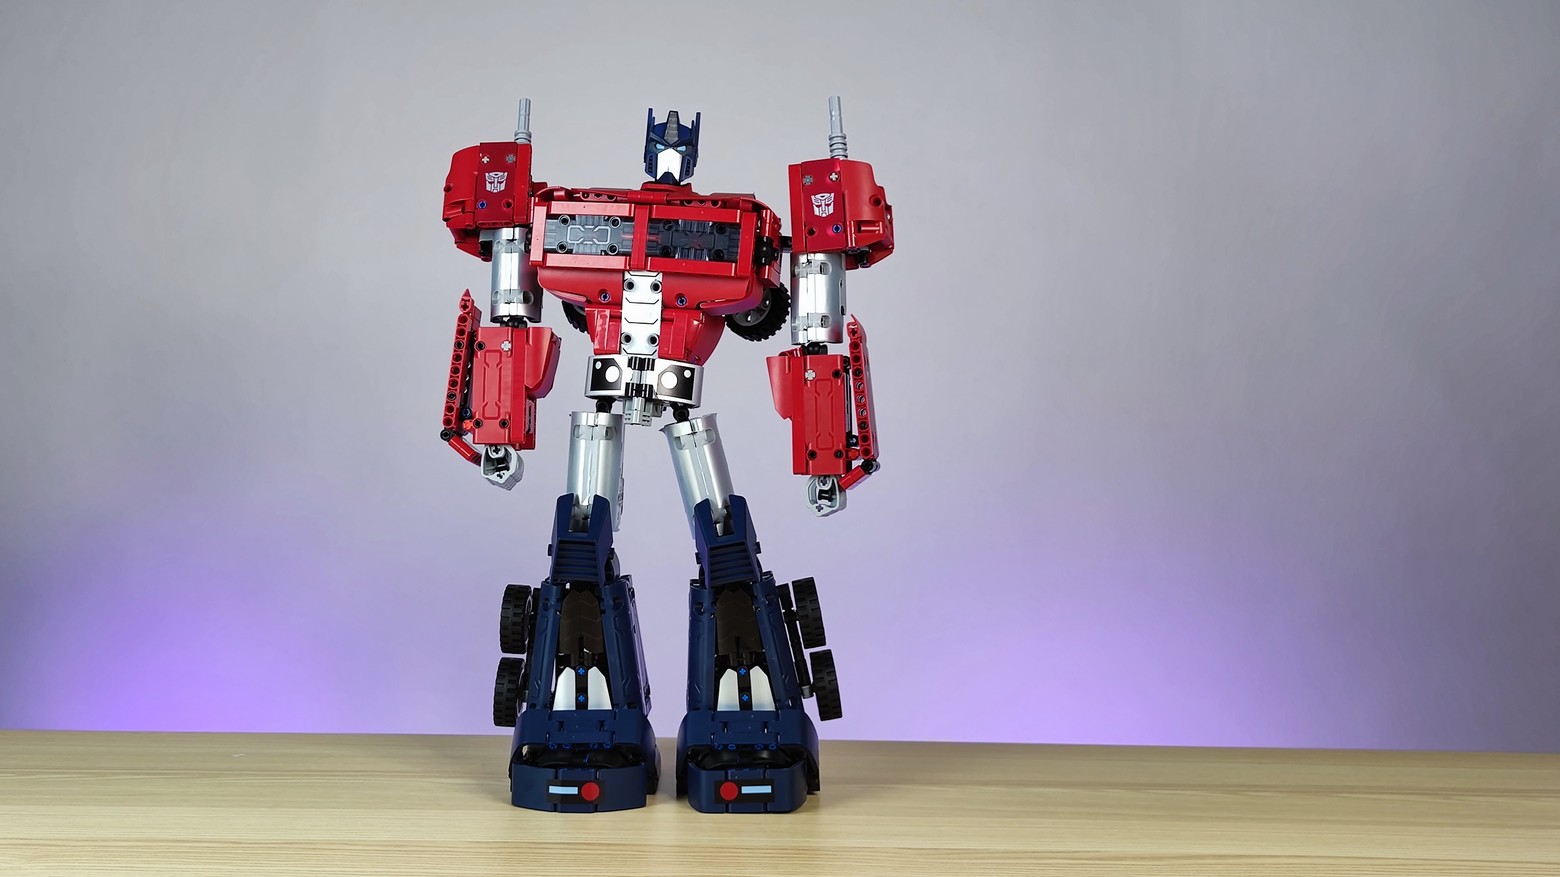 Xiaomi x Hasbro Nezha Transformers Optimus Prime Hands On!